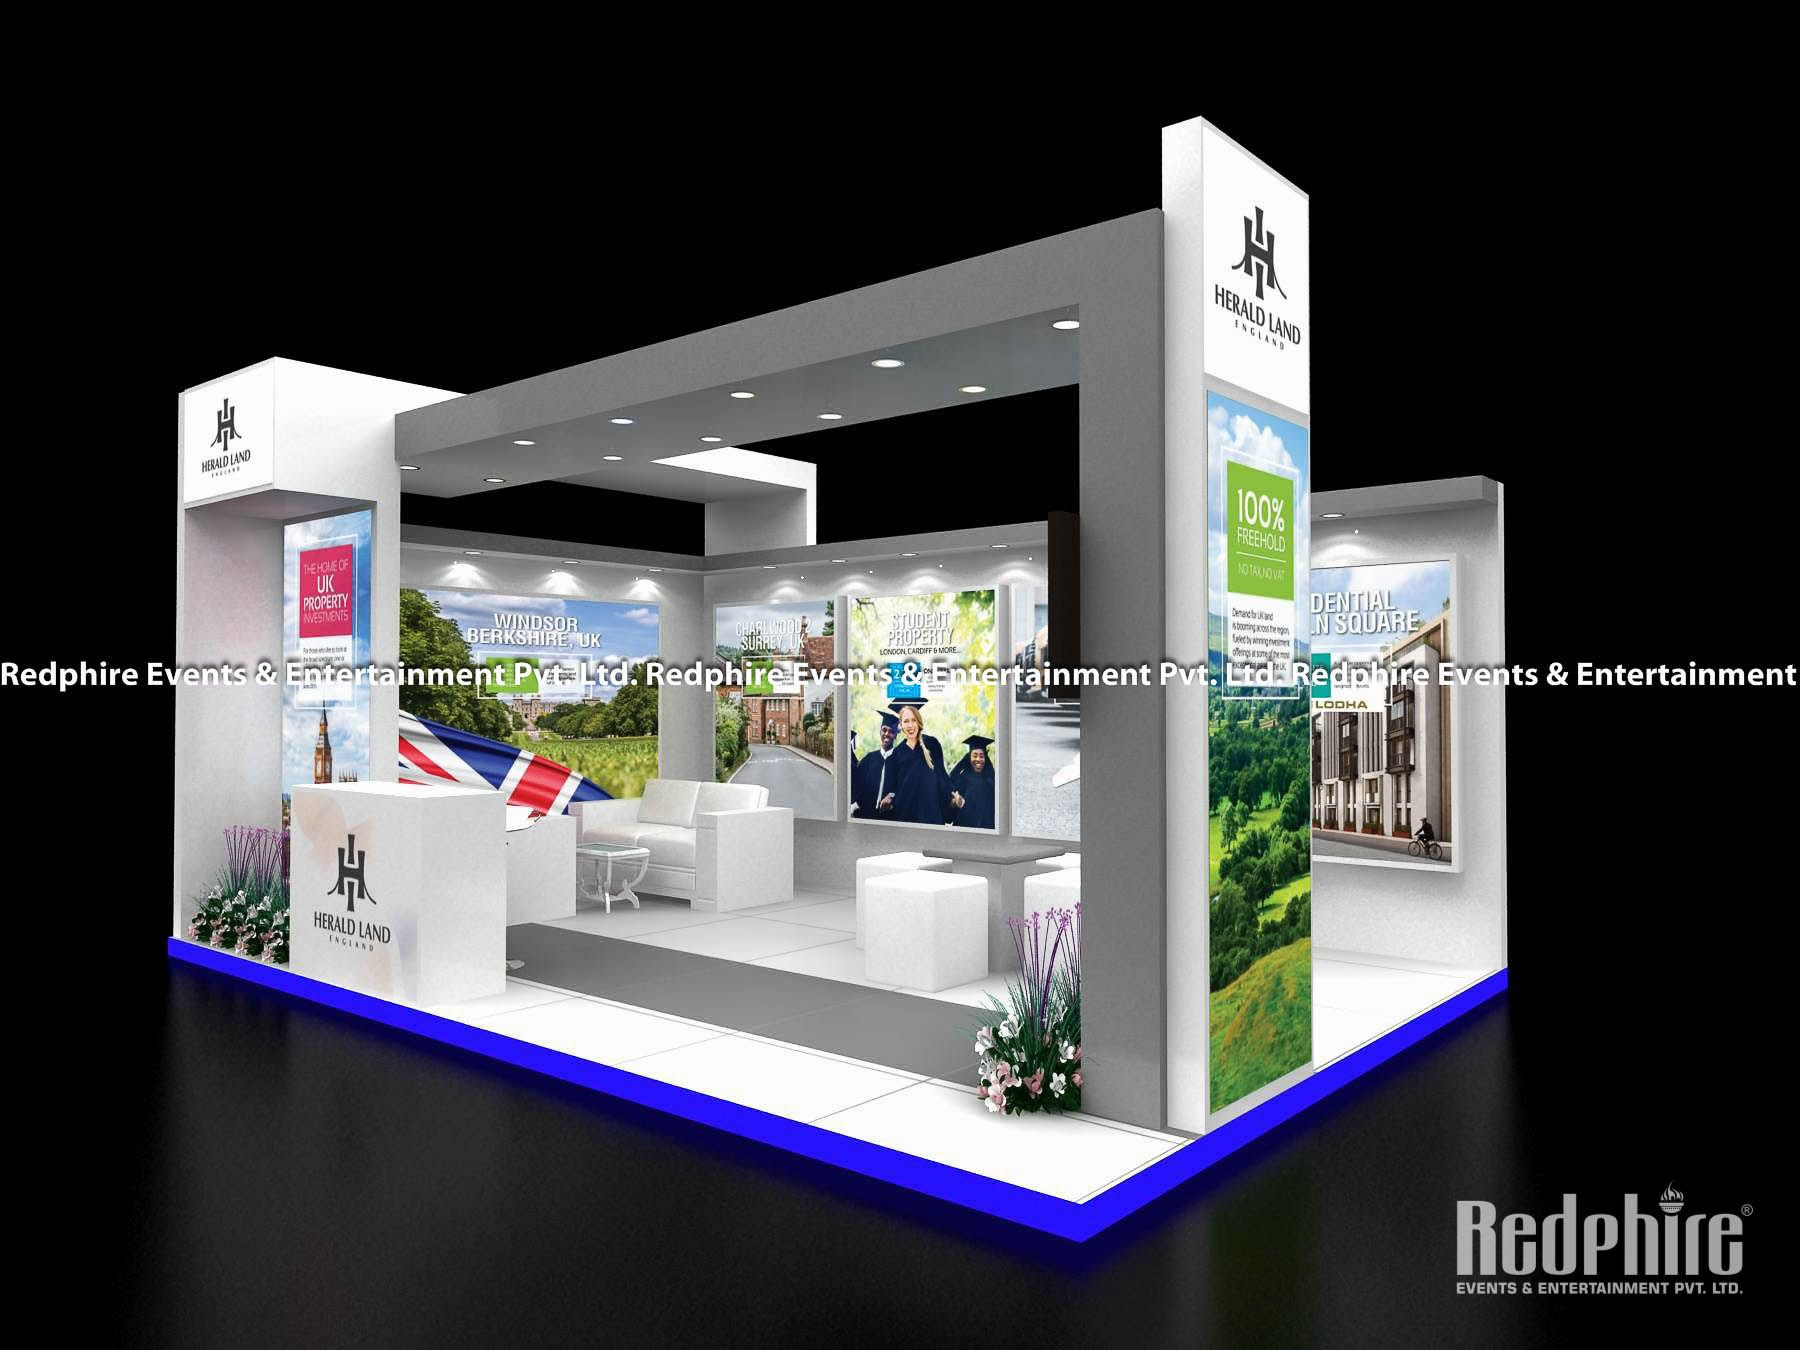 Property Exhibition Booth : Exhibition stall designing febrication herald land